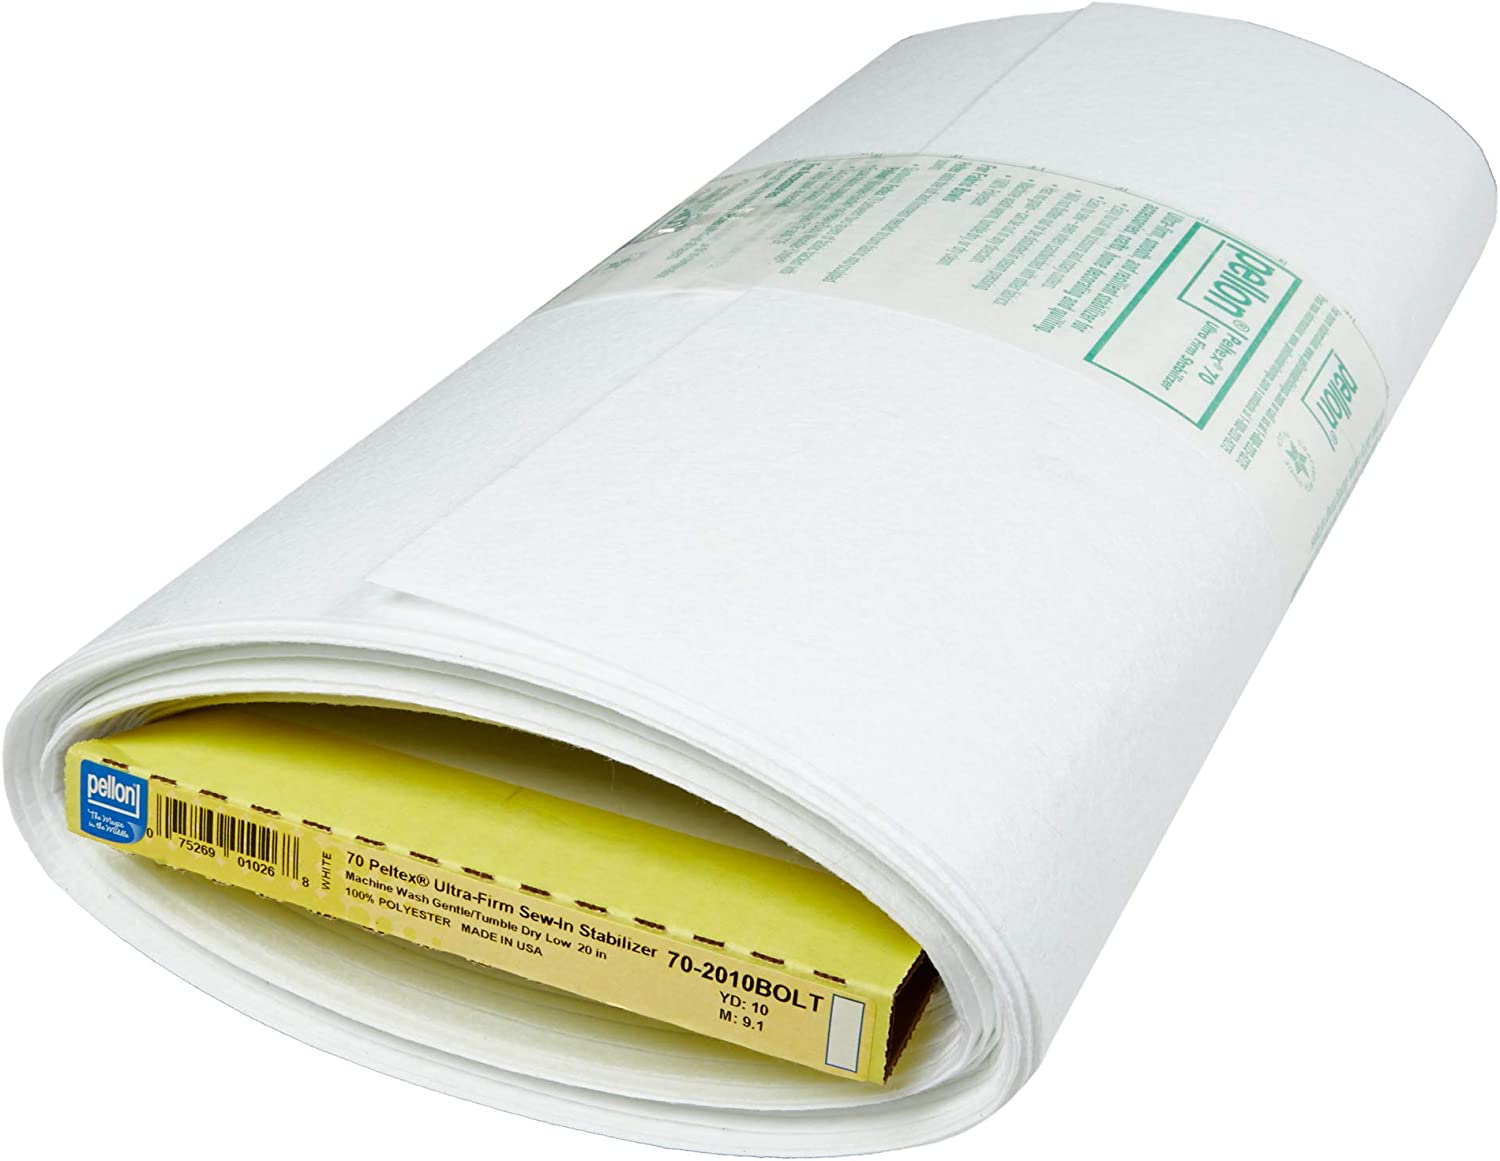 Pellon extra firm stabilizer Peltex 70 sew in extra firm interfacing or stabilizer for crafts.